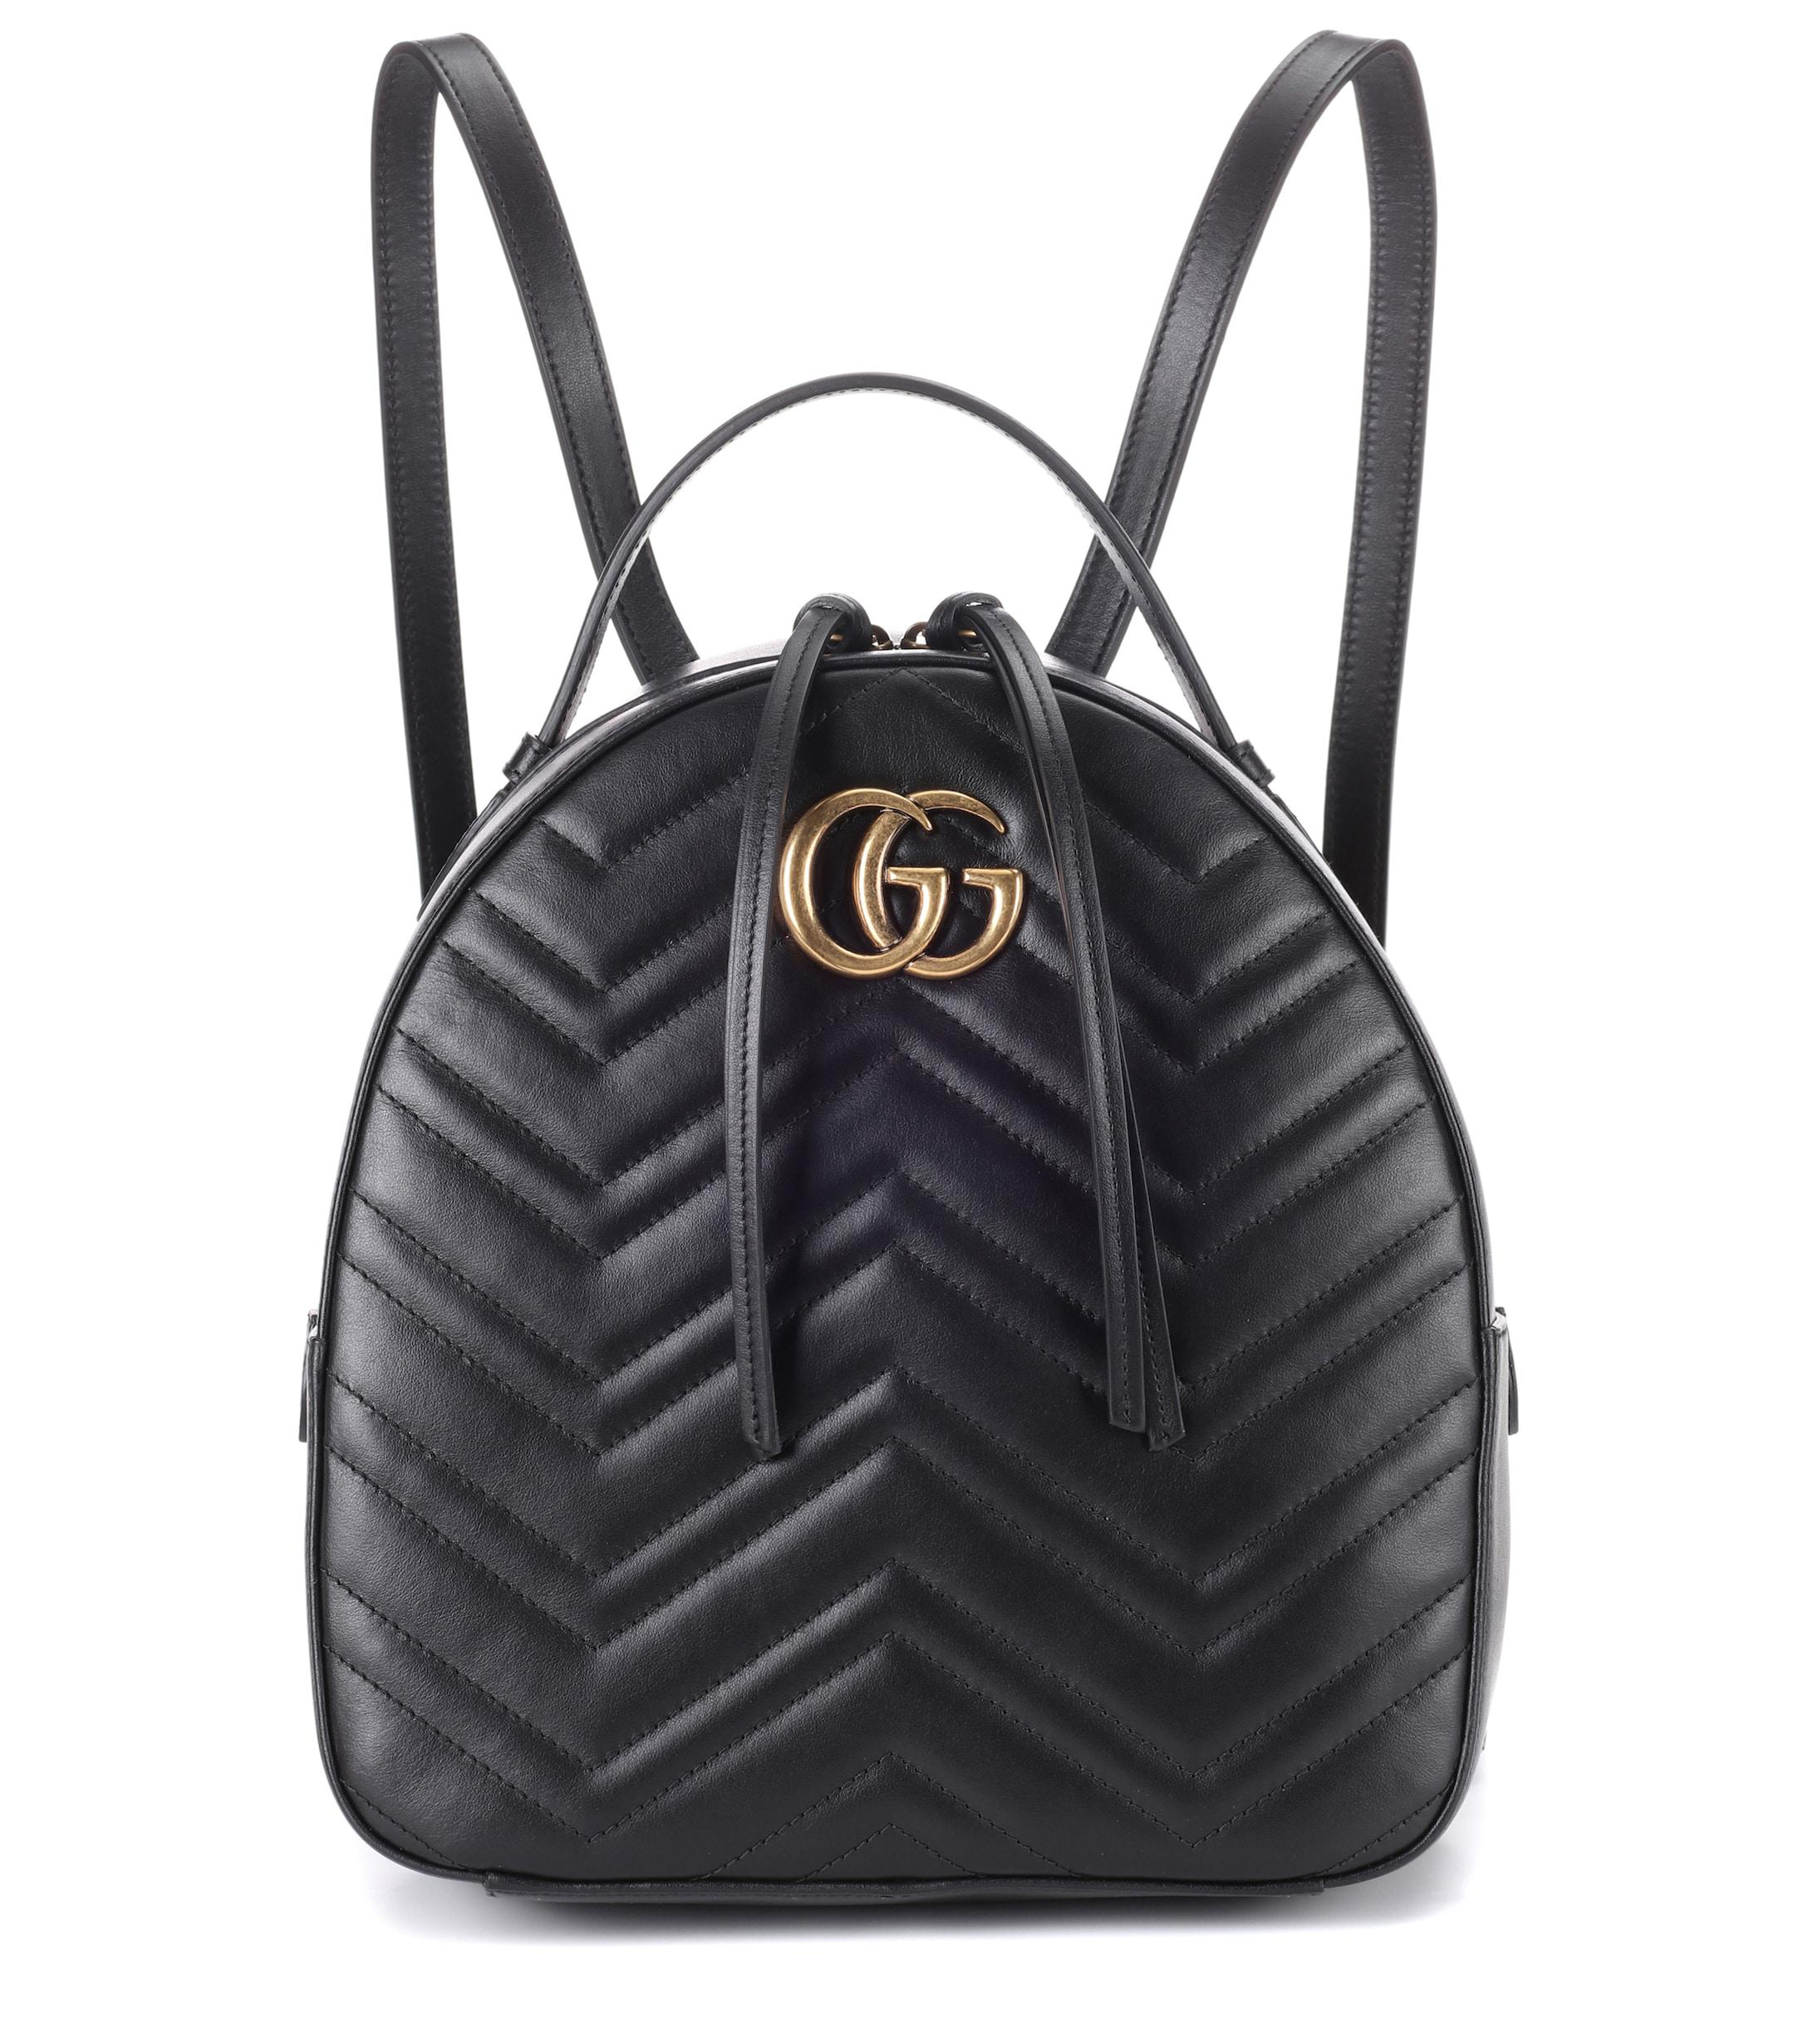 94bdeeaea Gucci GG Marmont Matelassé Leather Backpack in Black - Lyst